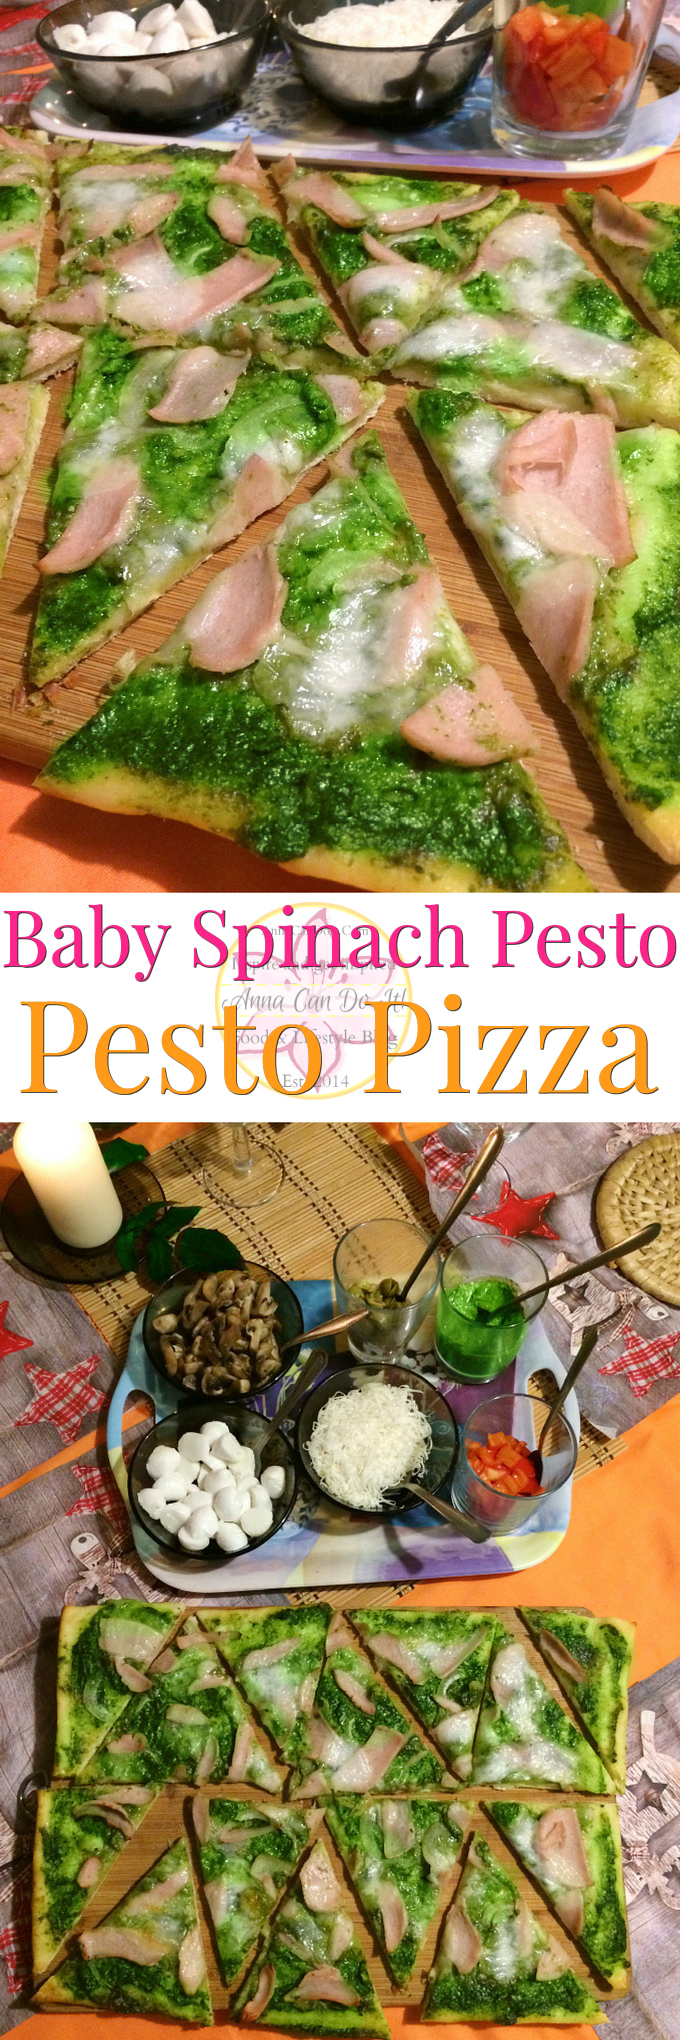 Baby Spinach Pesto - Pesto Pizza - Anna Can Do It! - Spinach Pesto is the pure green gold and now my family's favorite! This pesto is made with baby spinach and cashews. Spinach pesto is so simple to make and so tasty, you'll put it on everything!